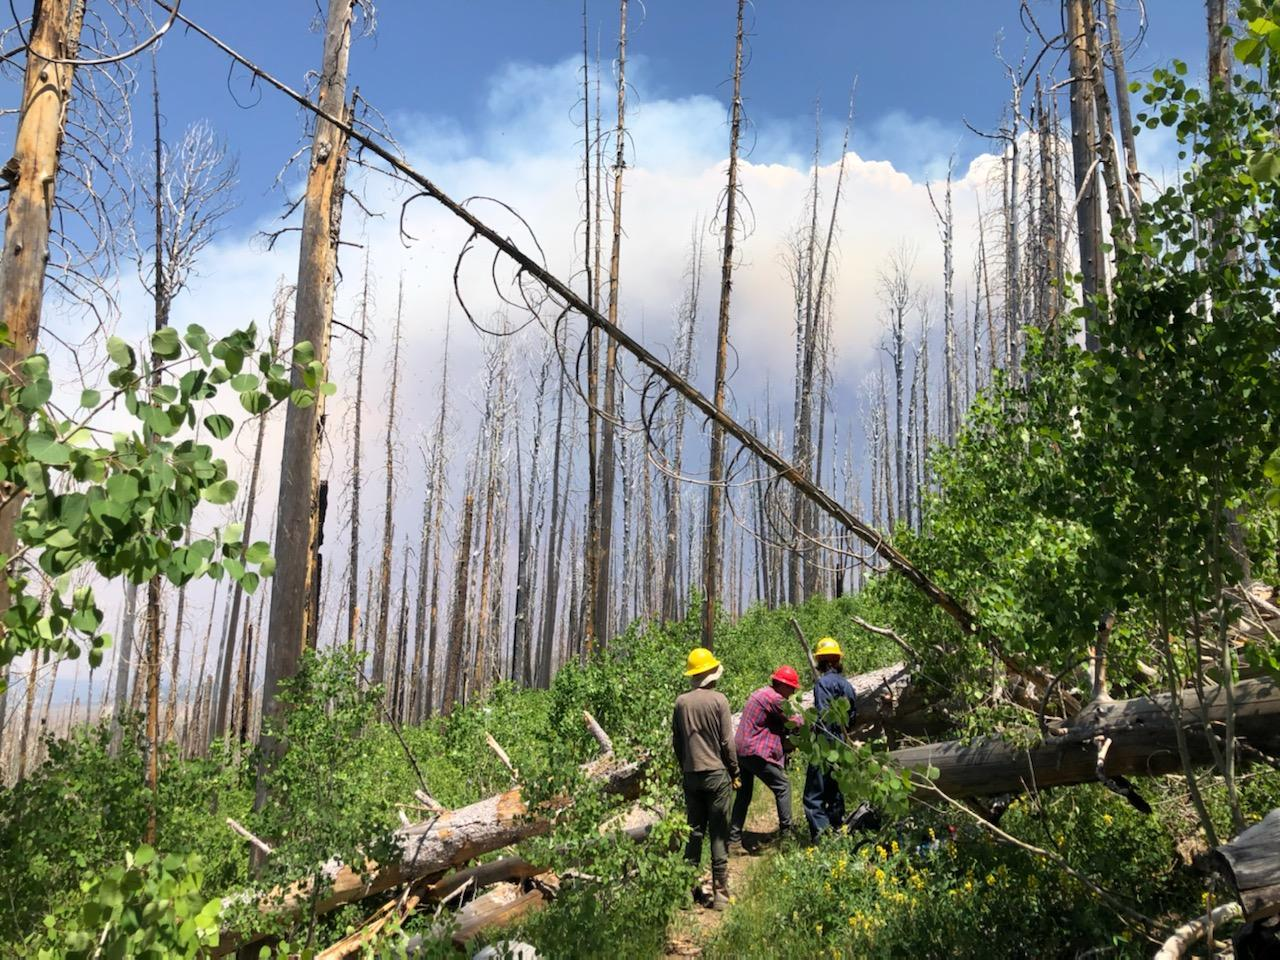 While the Gila Trail Crew clears the Crest Trail the Johnson Fire burns in the background